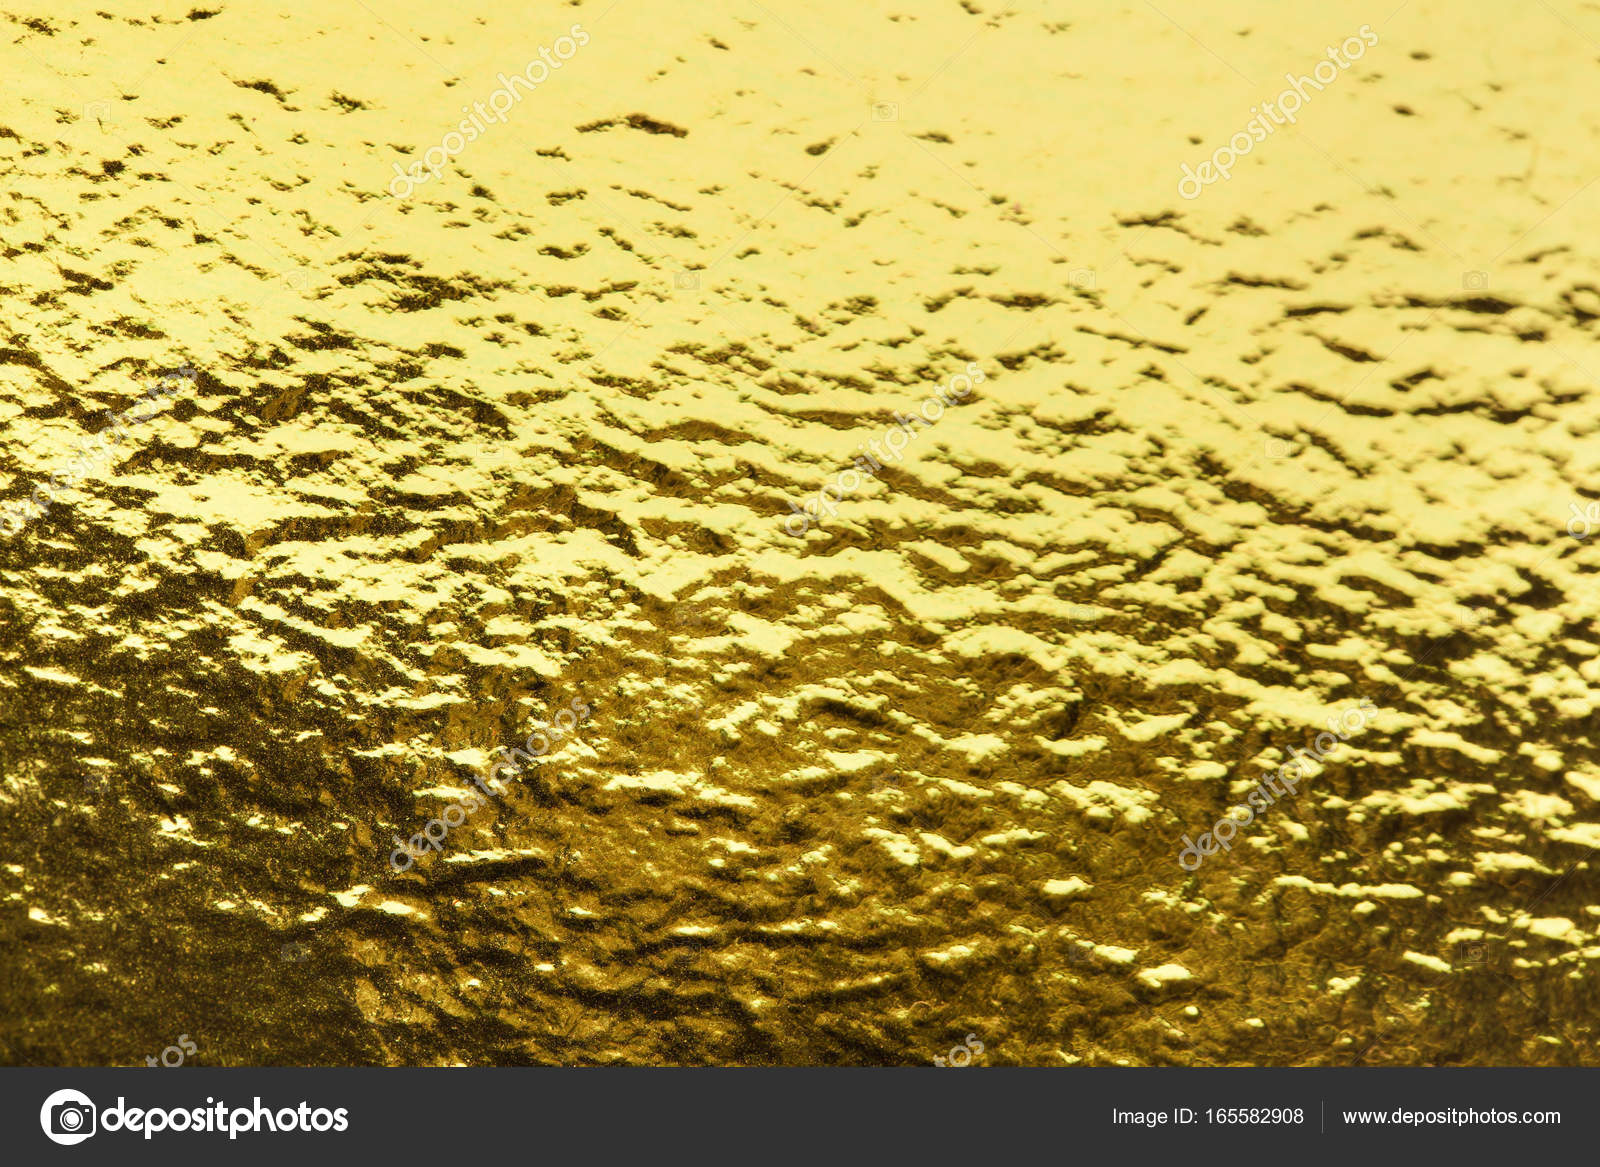 Gold foil leaf shiny wrapping paper texture background for wall ...